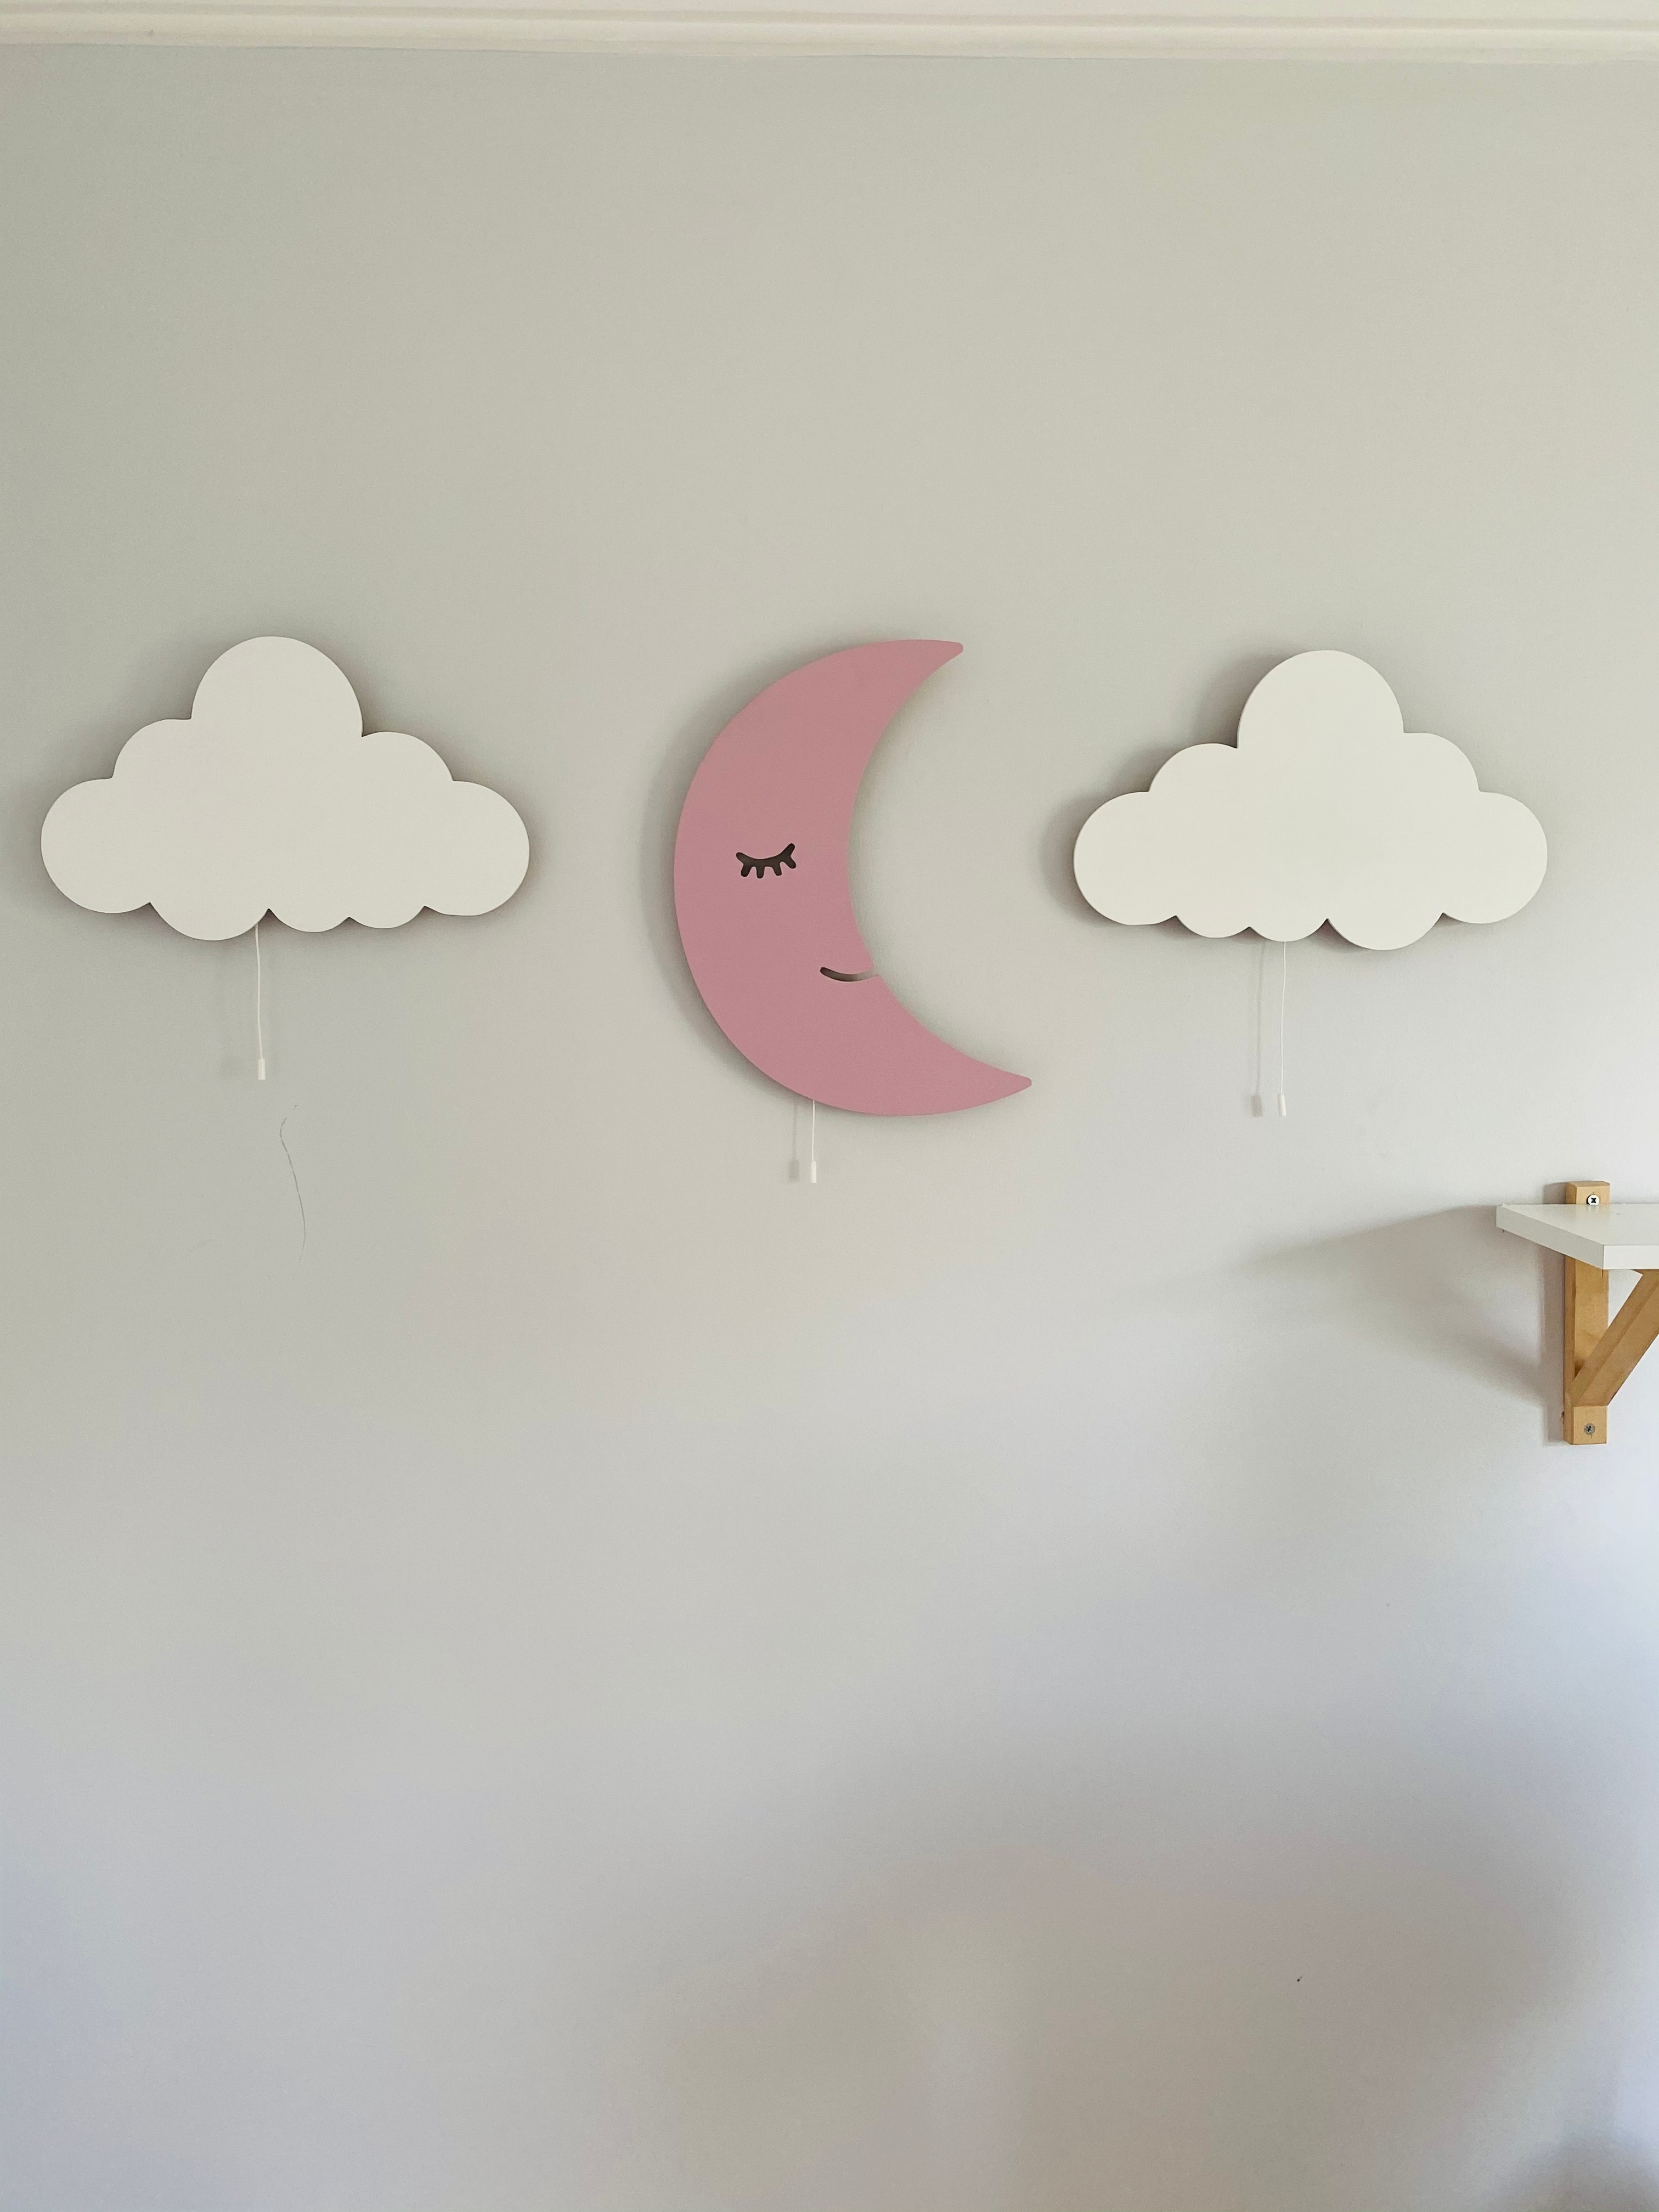 Set of 3- Wooden Cloud Lamp, Moon Night Light, Gift to Granddaughter, Montessori Approach Decor, Boy Room Decor, Baby Gift enlarge